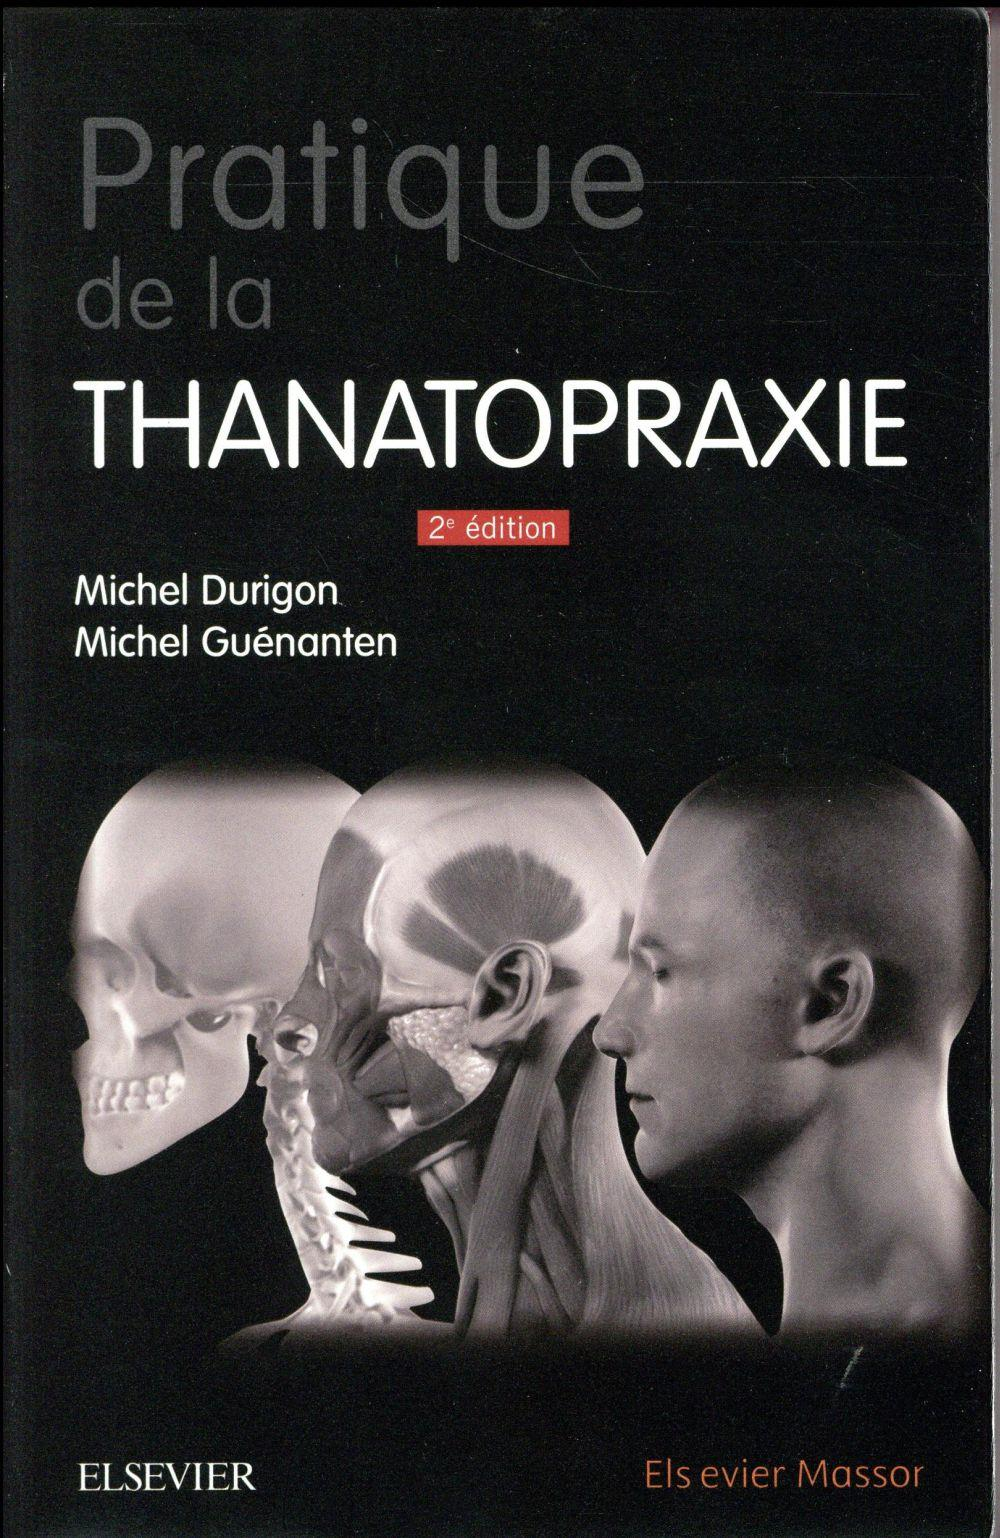 Pratique de la thanatopraxie (2e édition)  - Michel Guenanten  - Michel Durigon